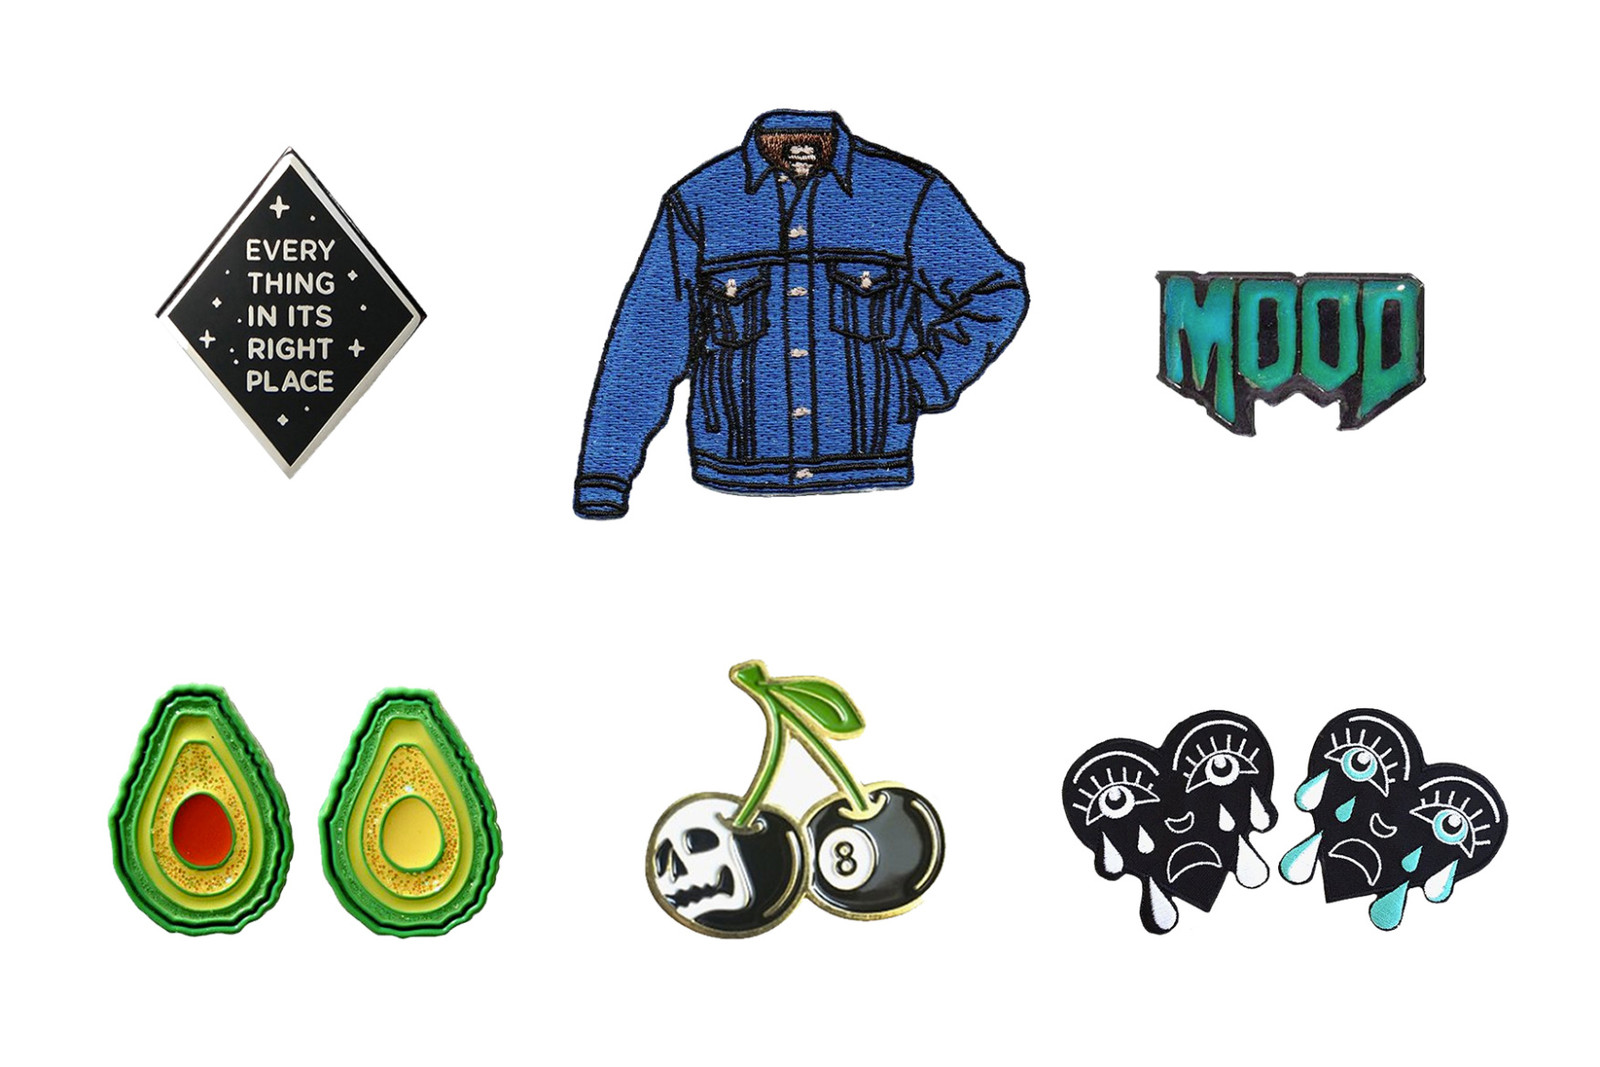 Pins and Patches Interview on DIY Community | HYPEBEAST